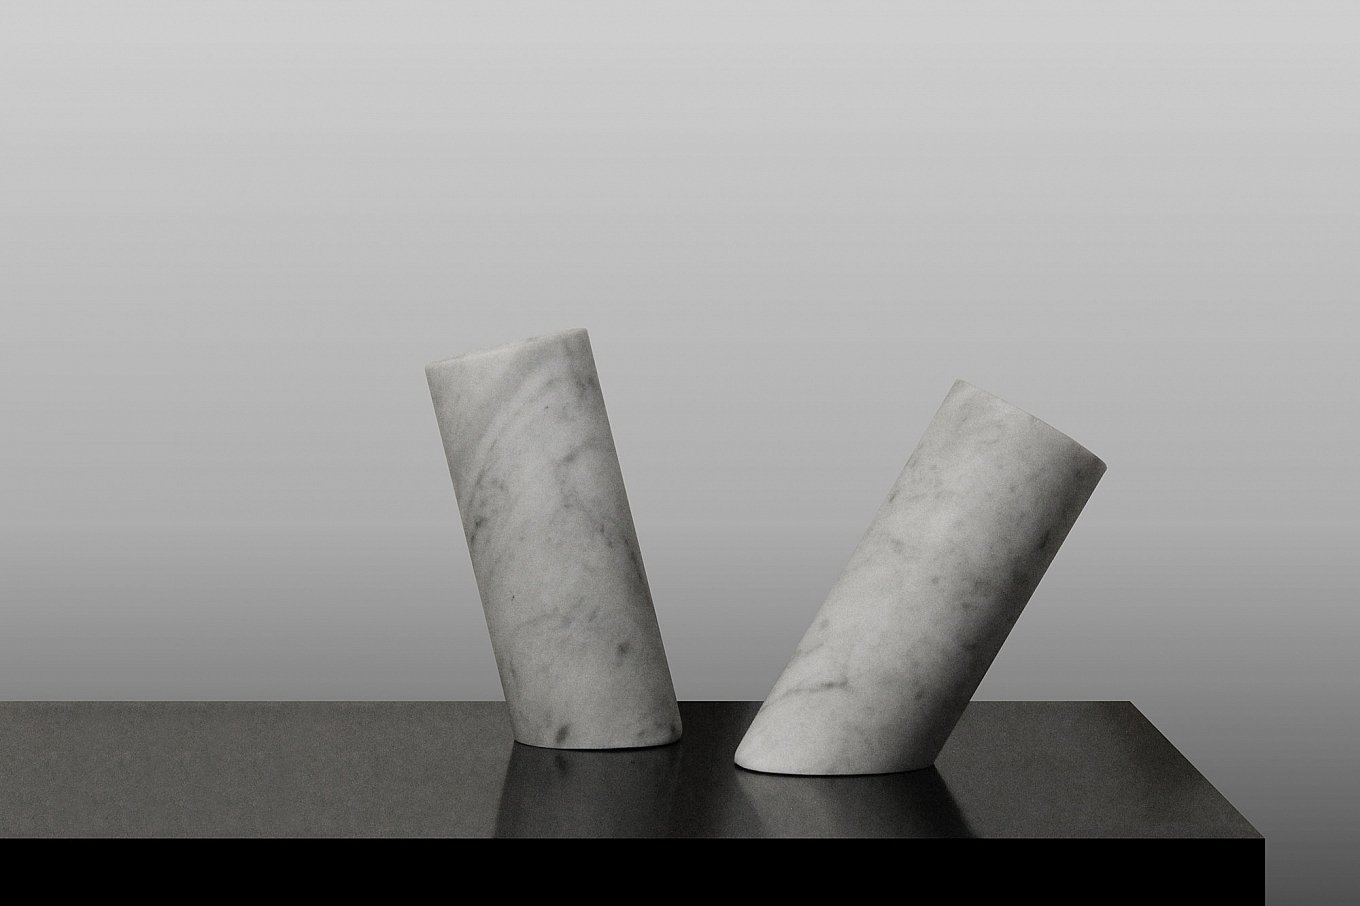 marble-vases-made-in-italy-moreno-ratti-4